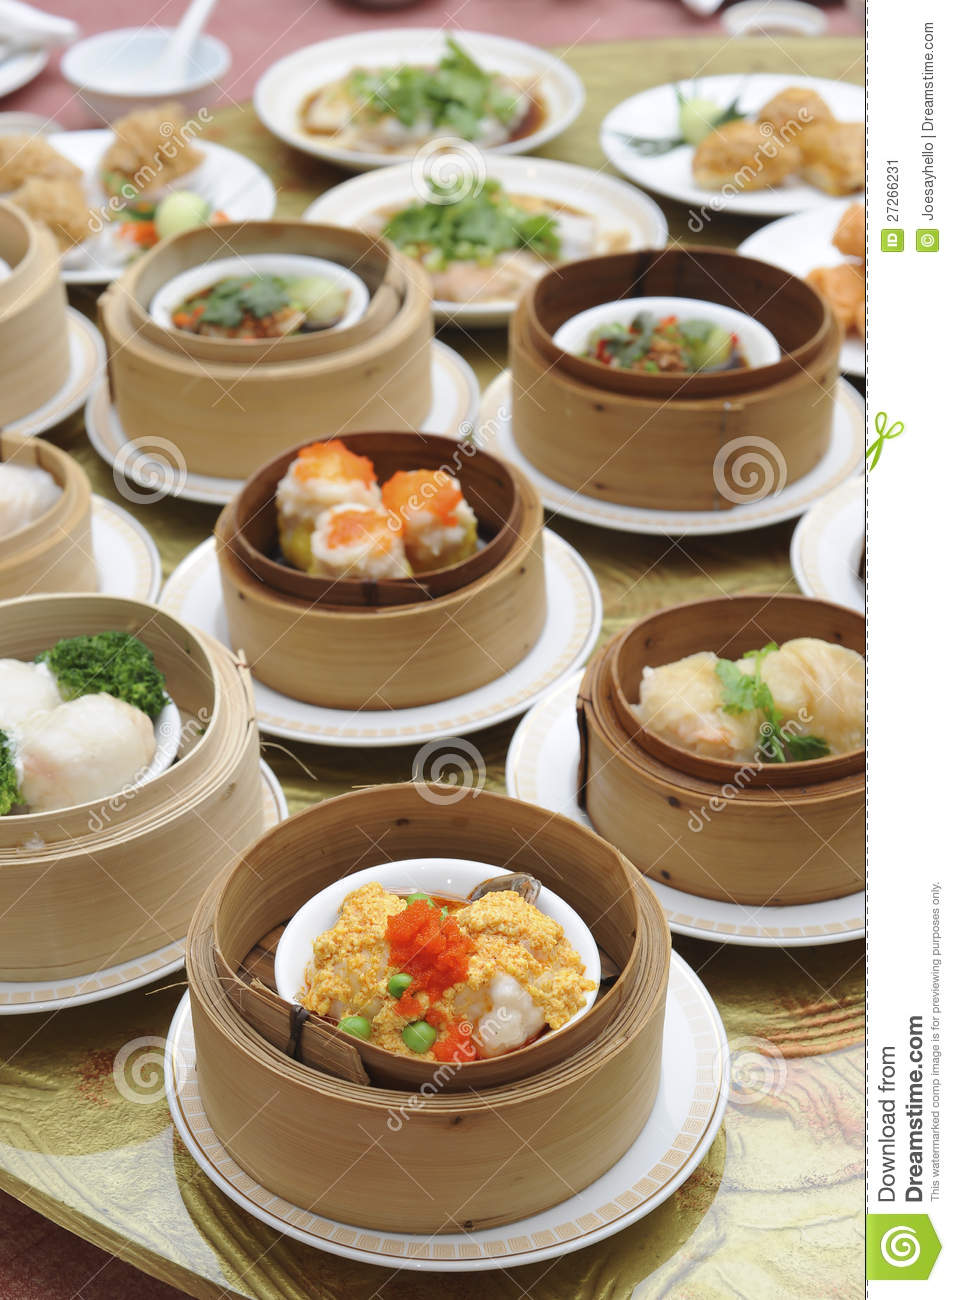 Dim sum asian cuisine menu stock image image 27266231 for Akina japanese cuisine menu